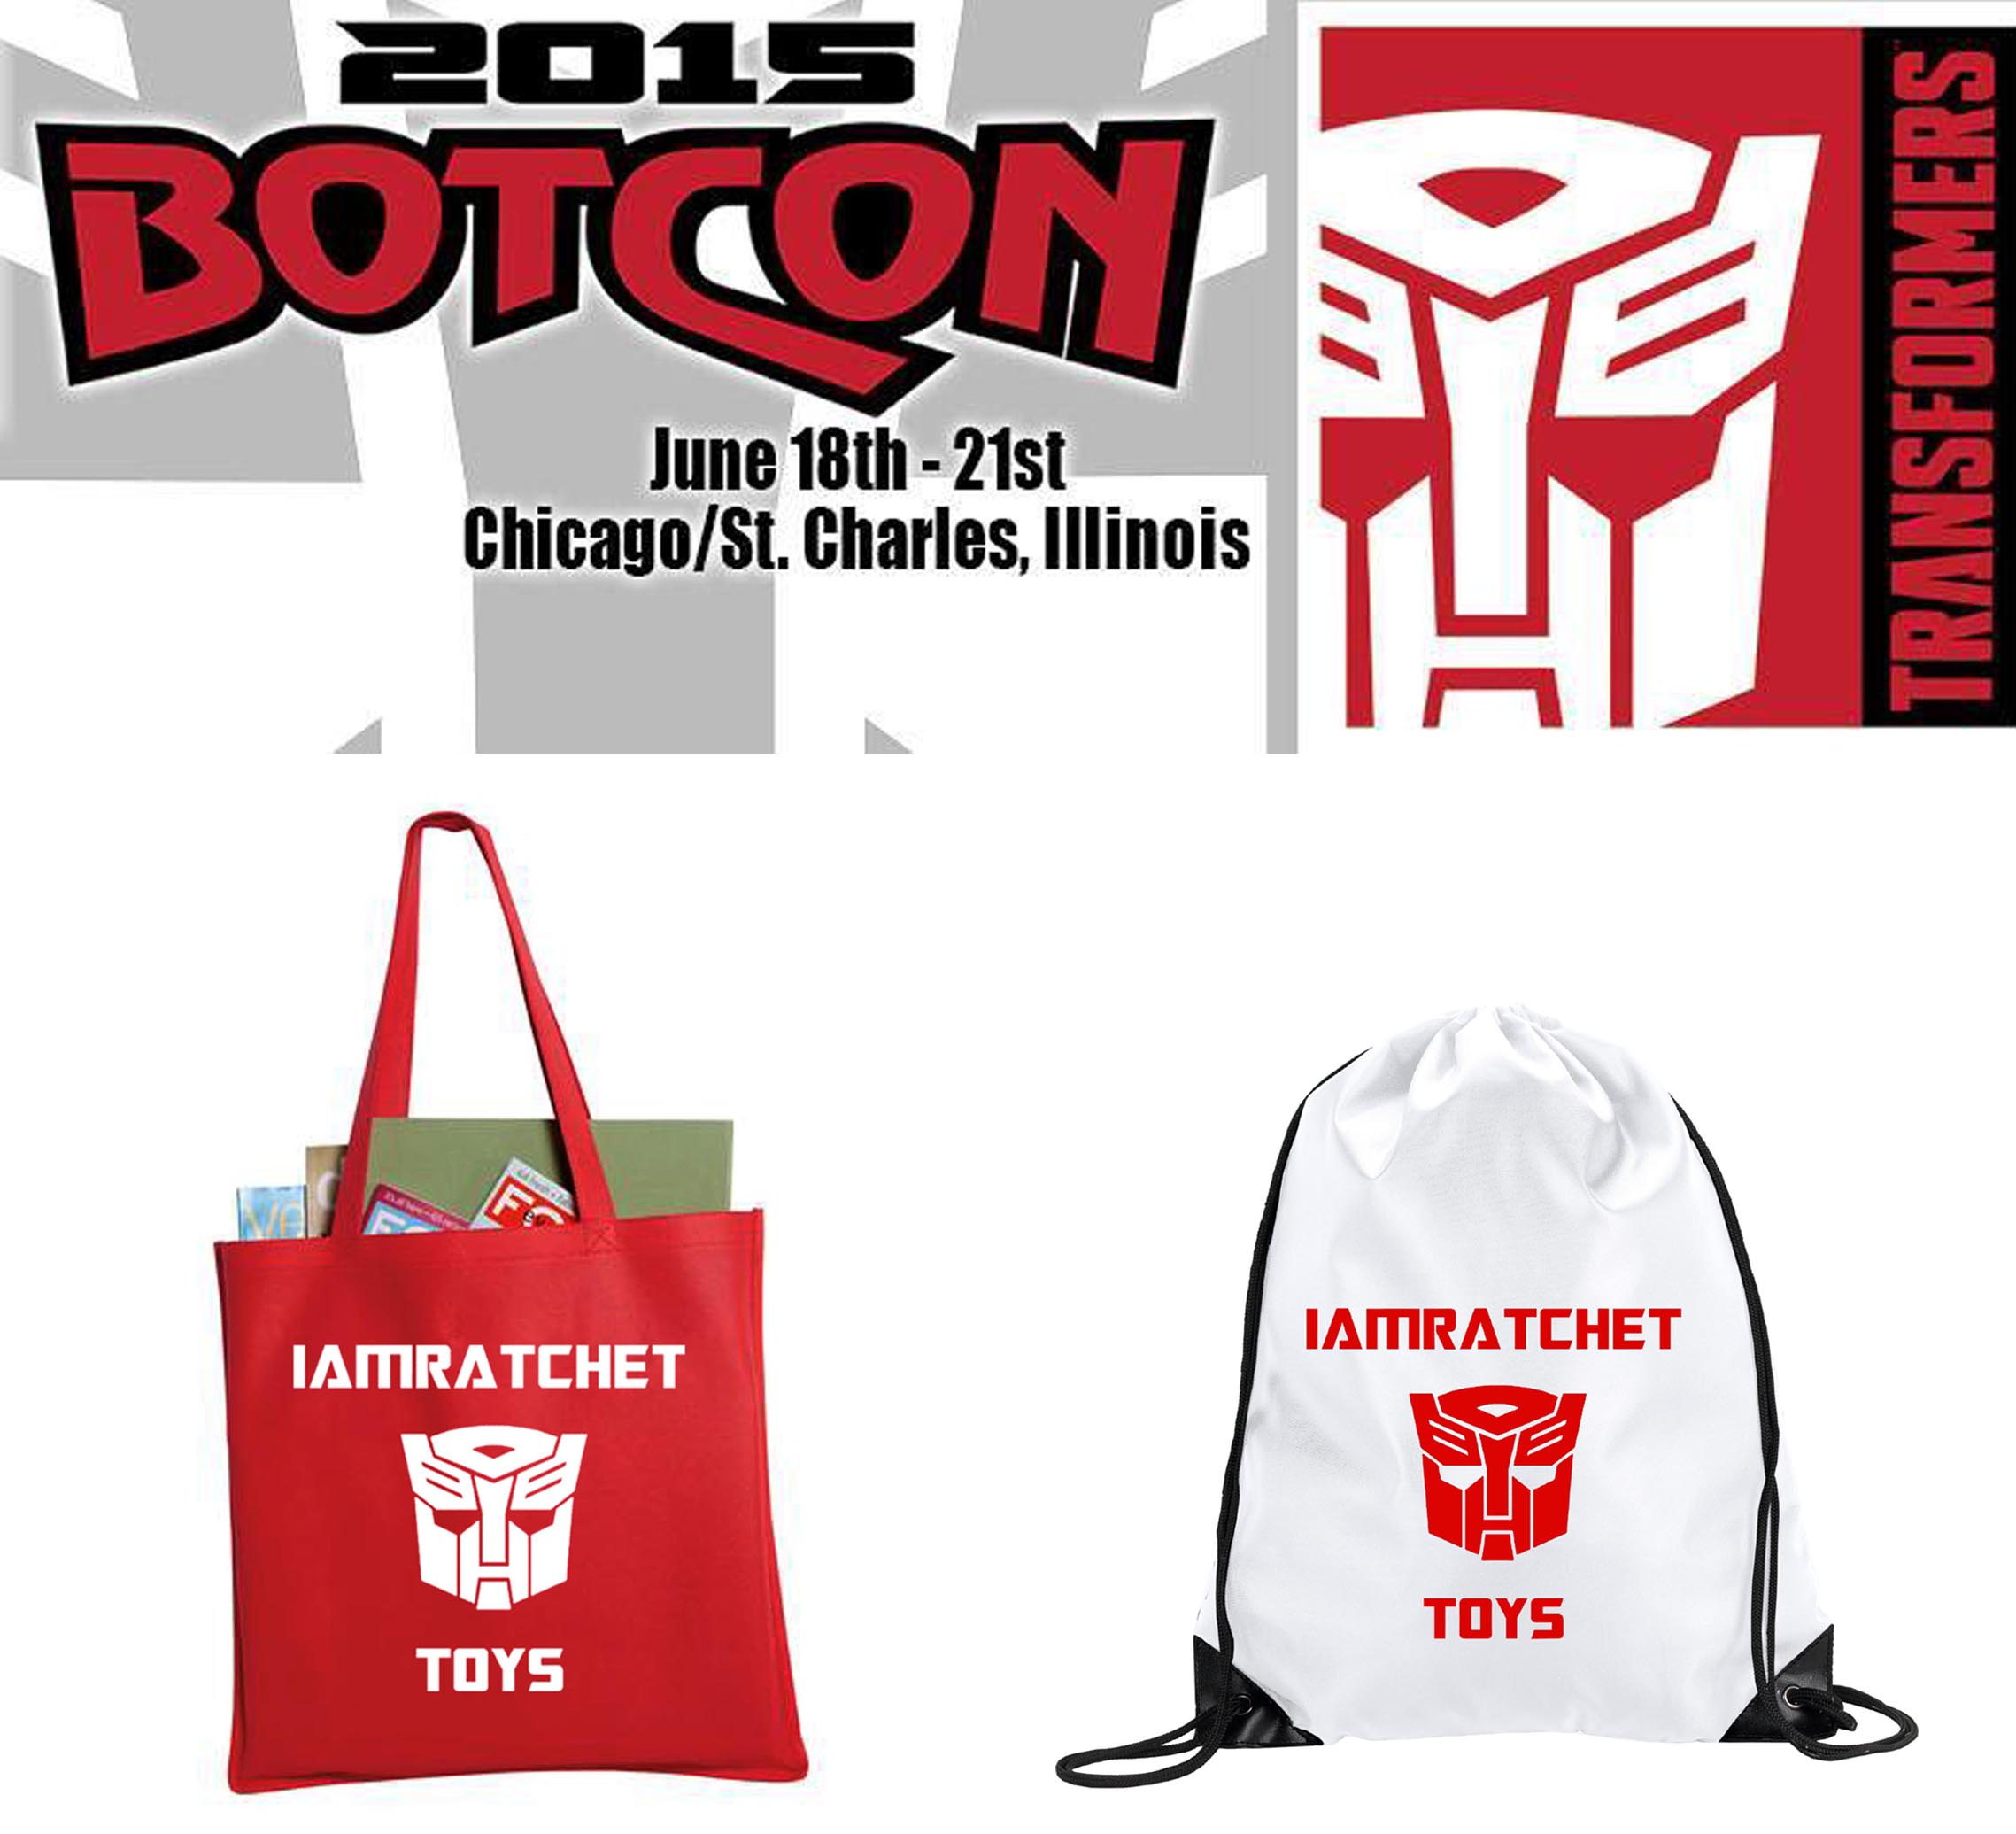 botcon chicago 2015